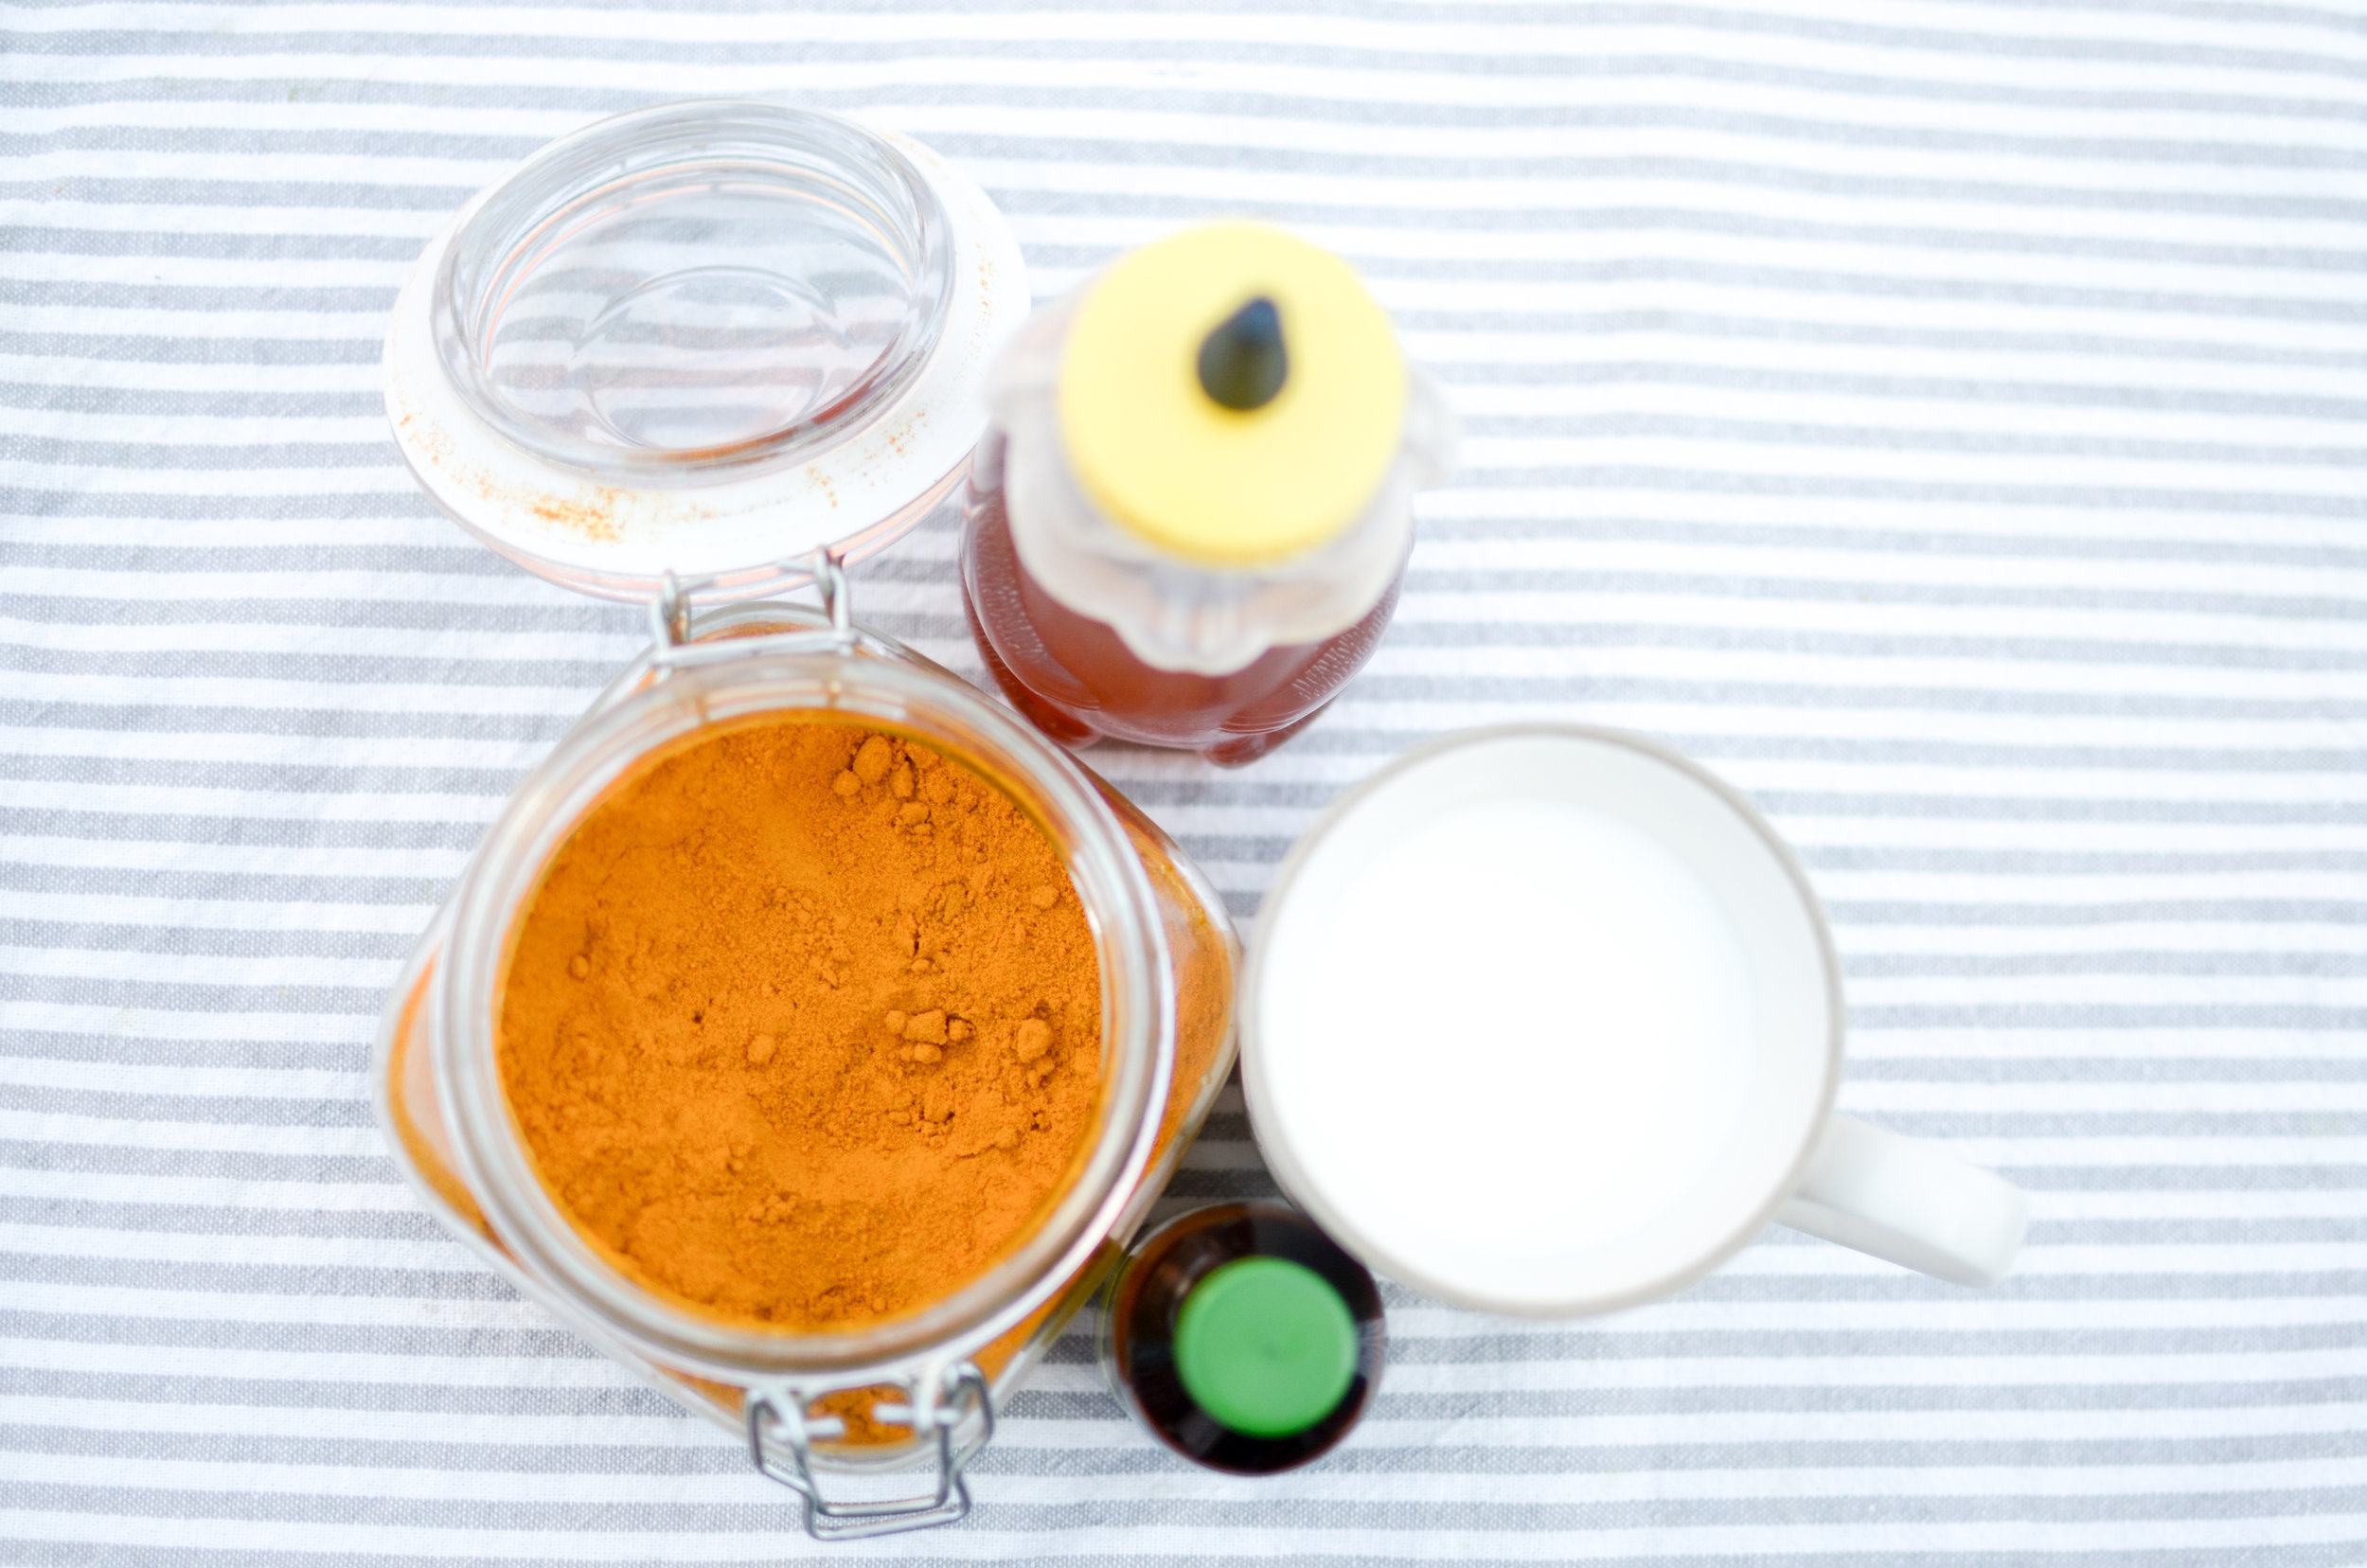 All you need for this drink is: 3.25% milk, turmeric, honey, and vanilla.